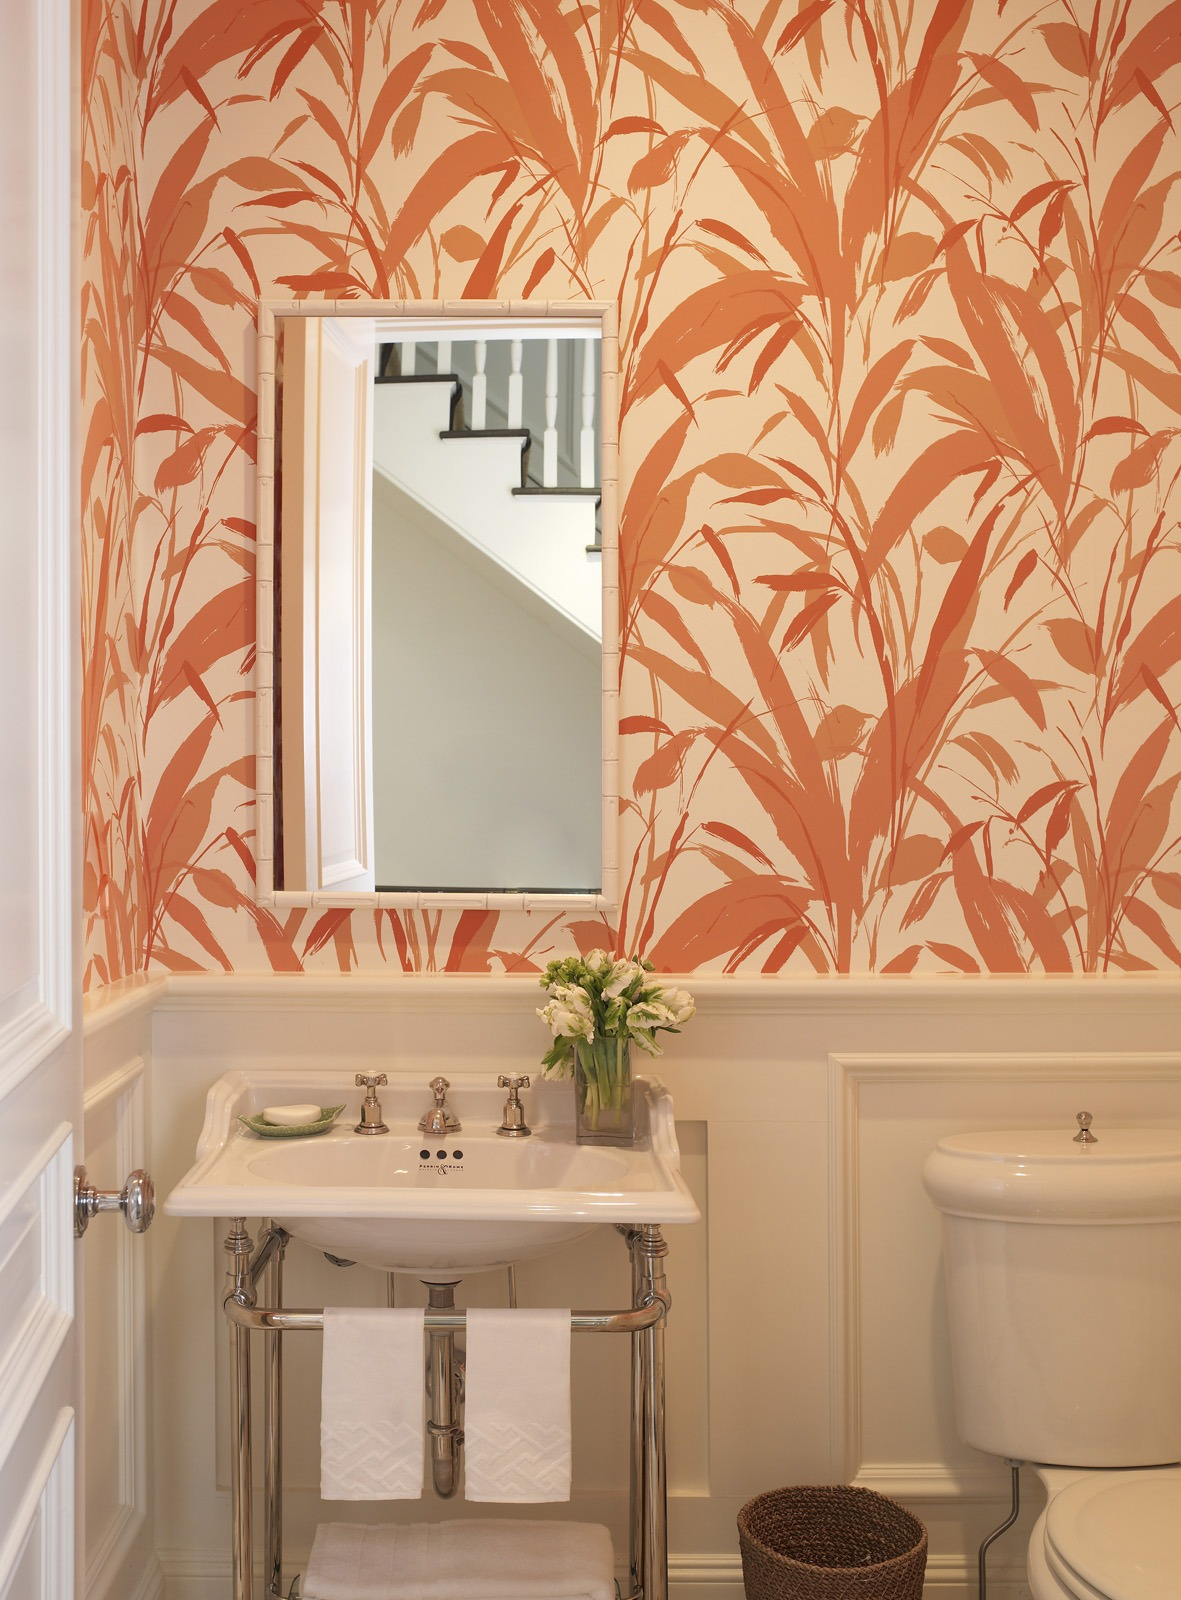 Meg Braff Designs Southampton home powder room wallpaper